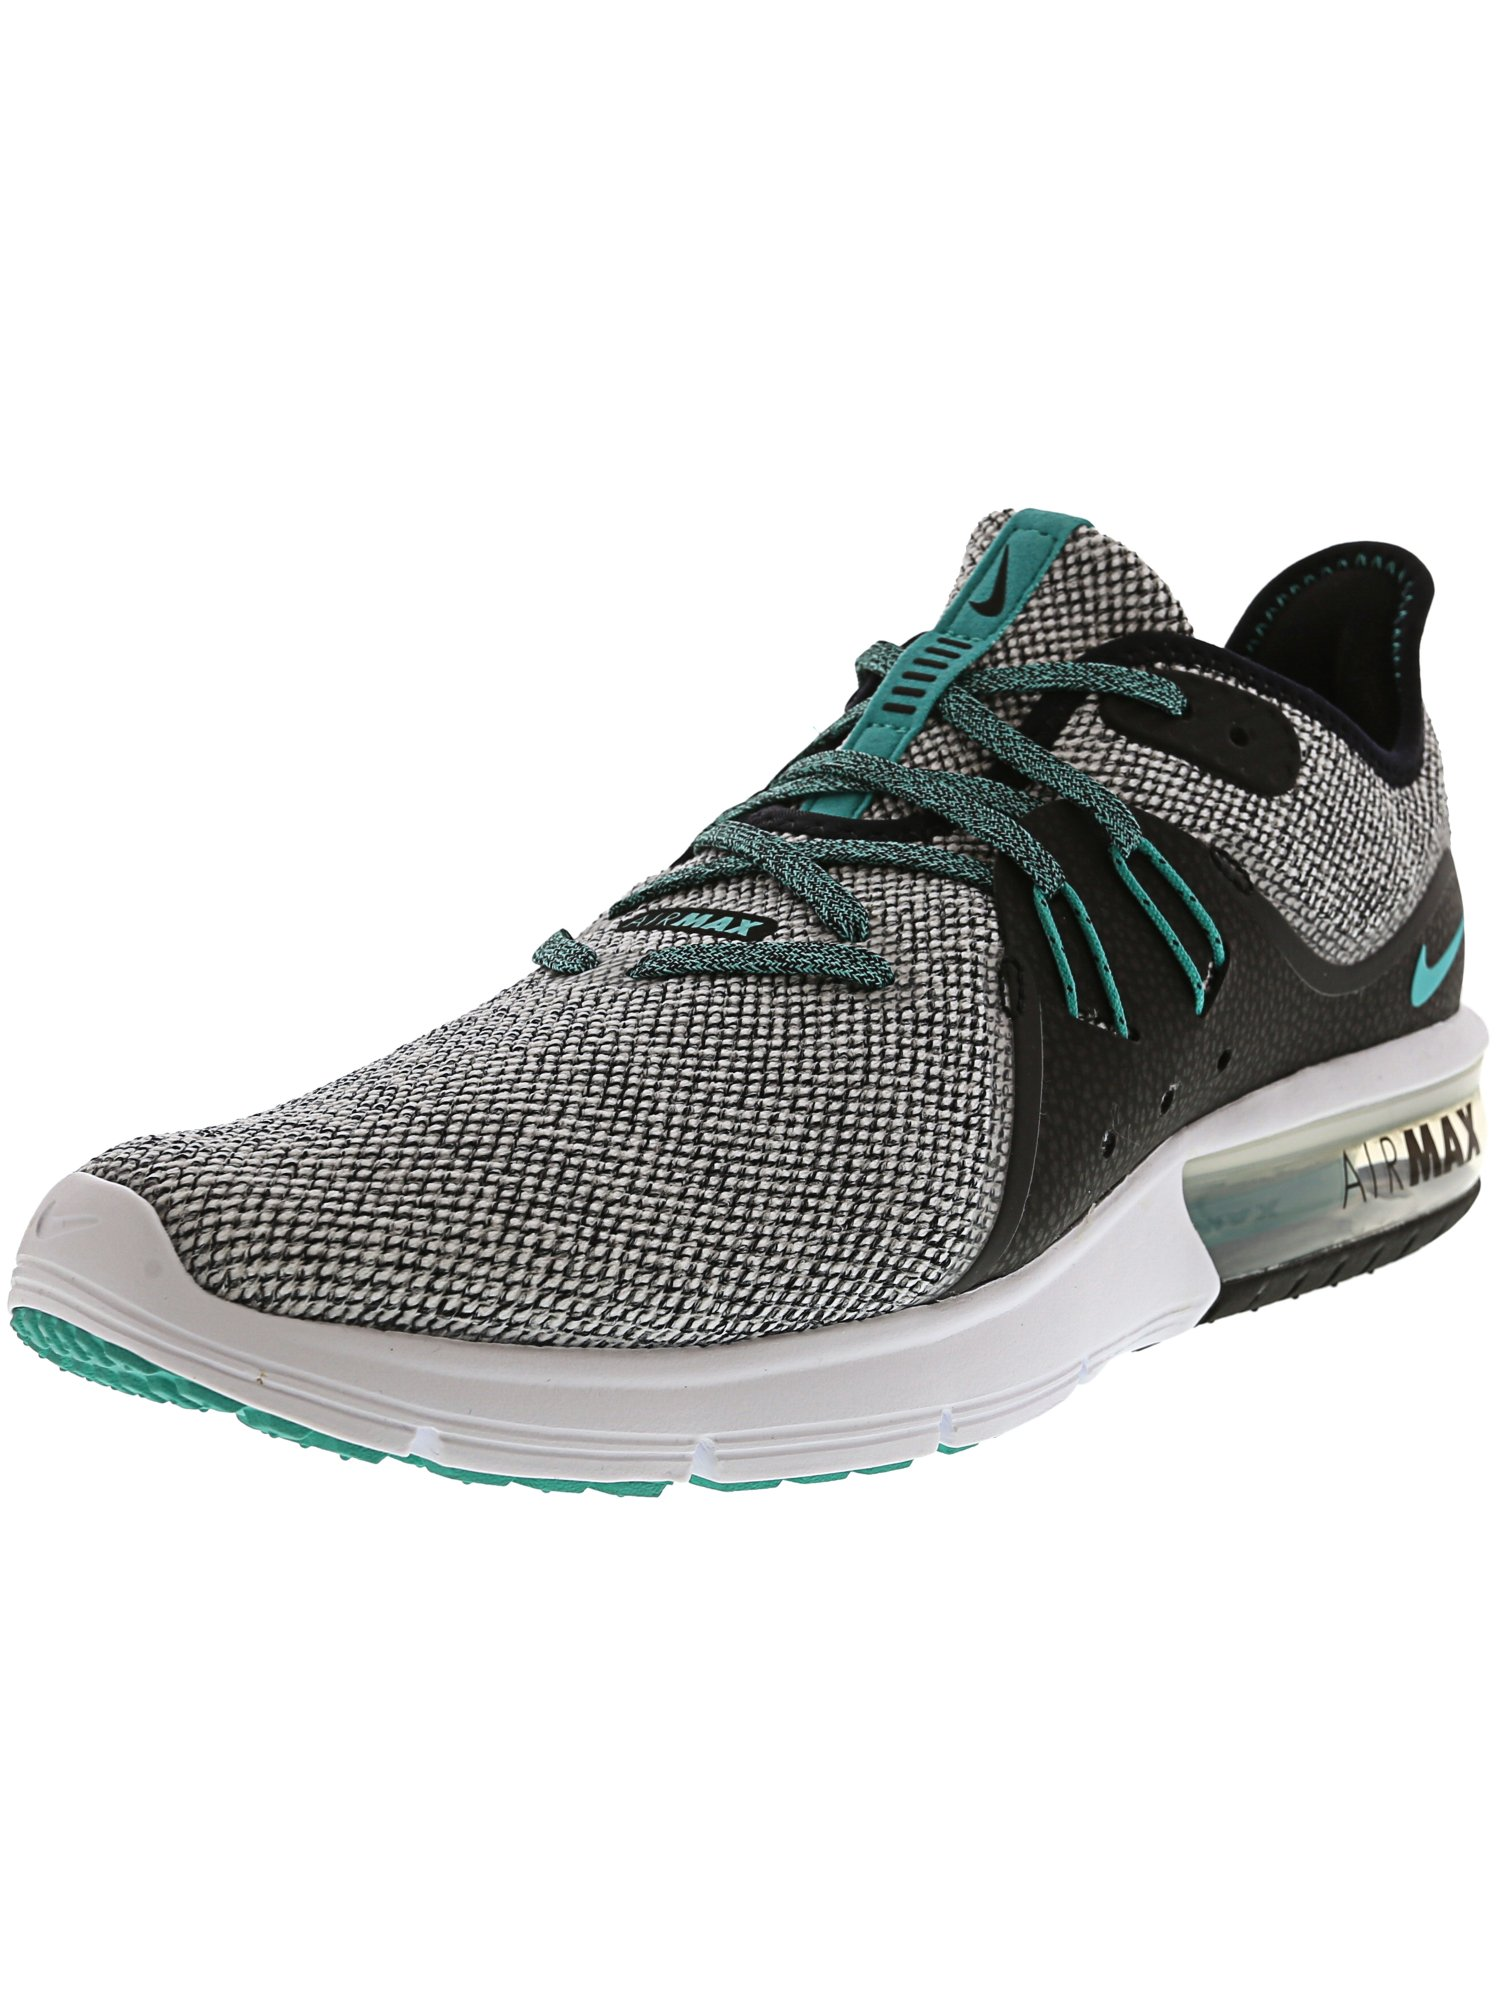 2d675b1e3d7c Nike Men s Air Max Sequent 3 Ankle-High Running Shoe